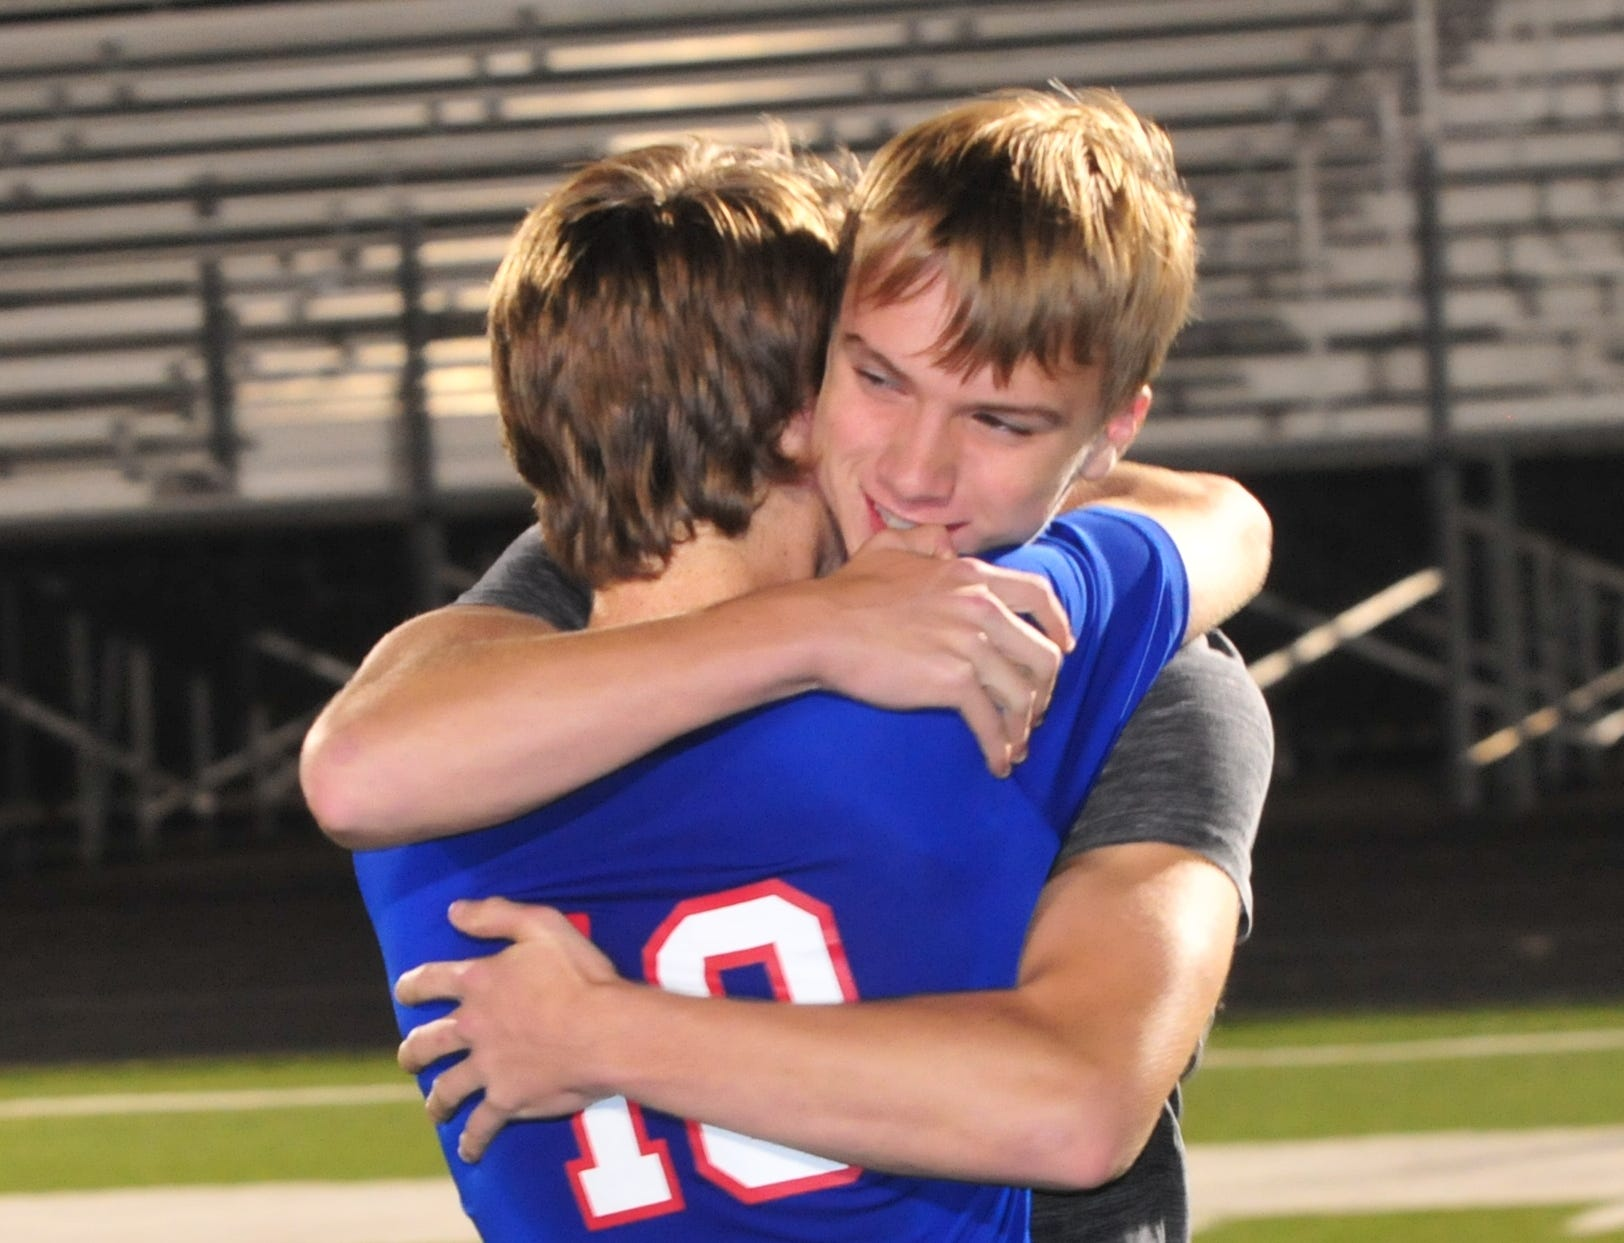 Union County's Cam Sanford is hugged after a 6-1 loss to Seton Catholic during the IHSAA Class A Sectional 42 boys soccer semifinal at Knightstown Wednesday, Oct. 3, 2018.